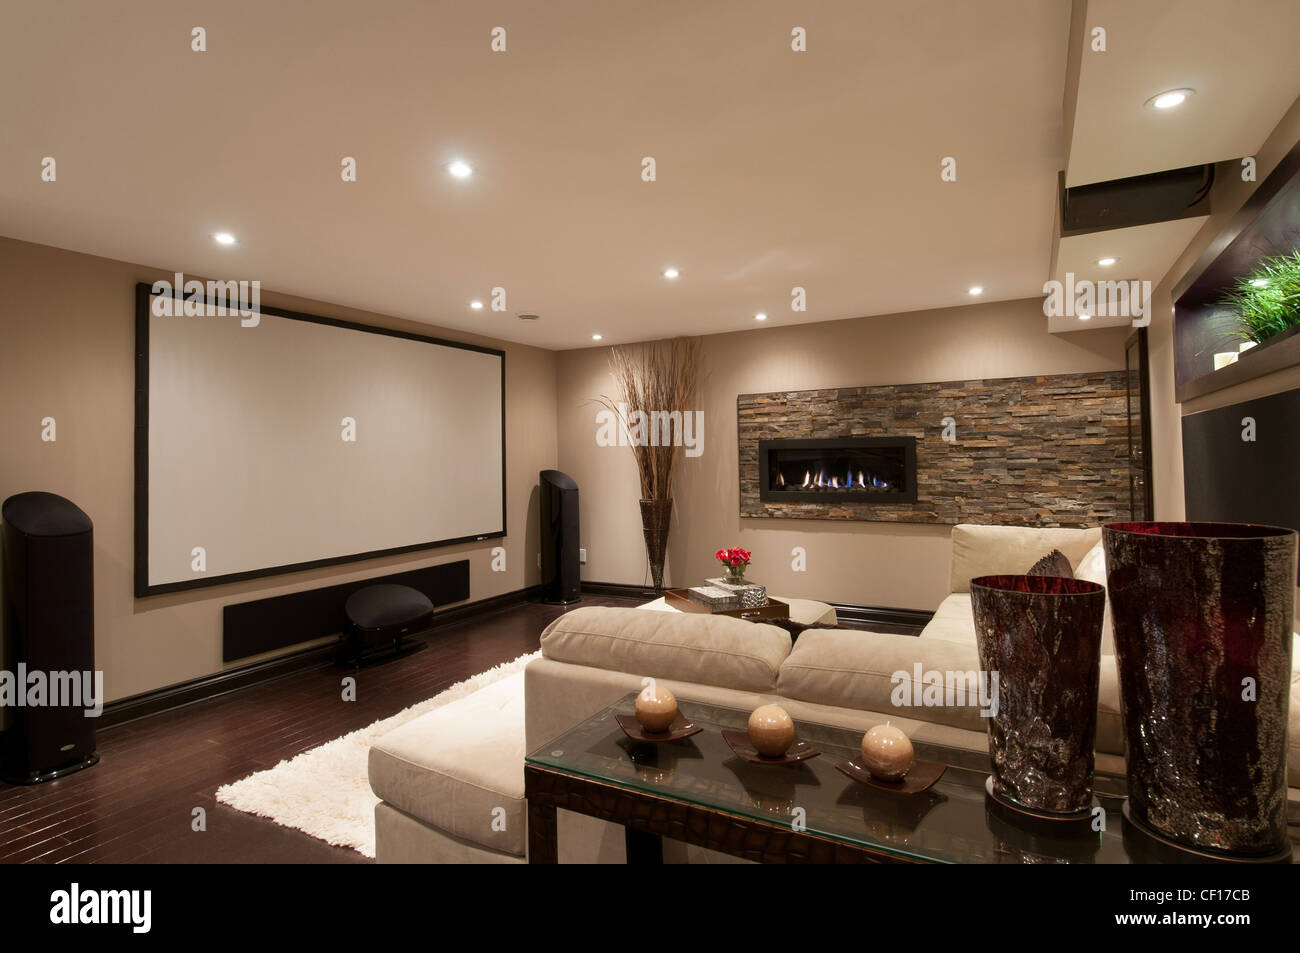 Basement In Luxury Residential Home With Sofa And Large Projection Screen  Home Theater.